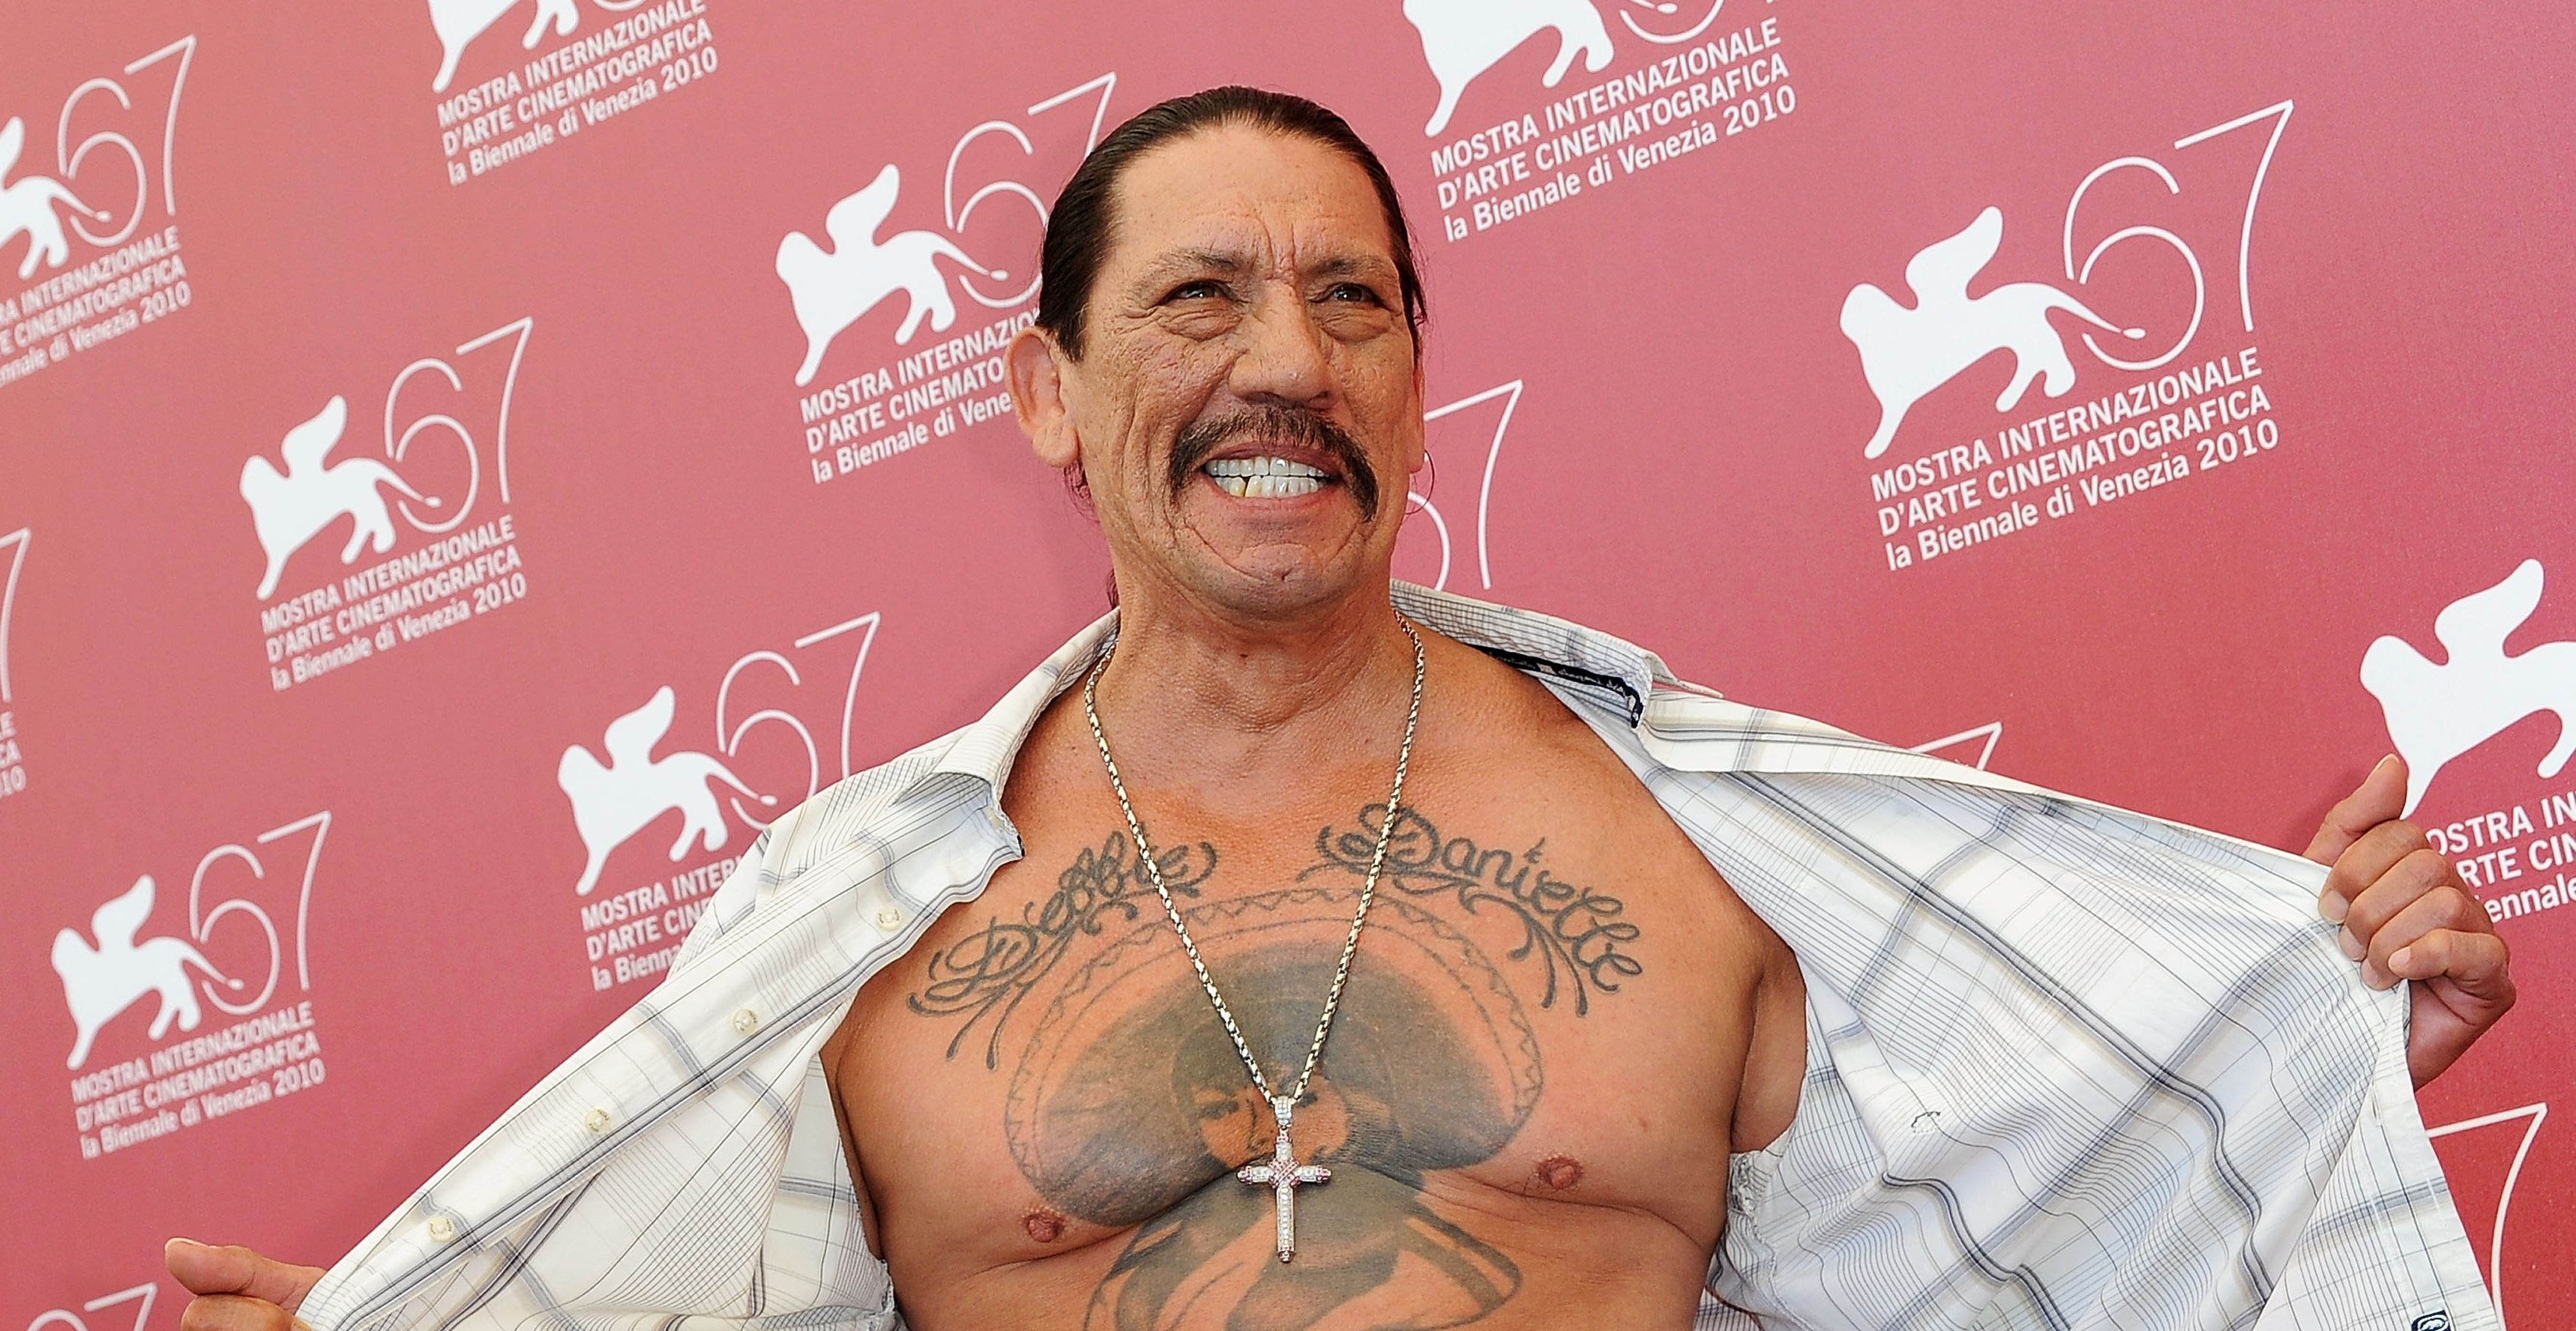 Danny Trejo Selling 'Mayans M.C.' Tacos Is the Most On-Brand Celebrity Endorsement Ever